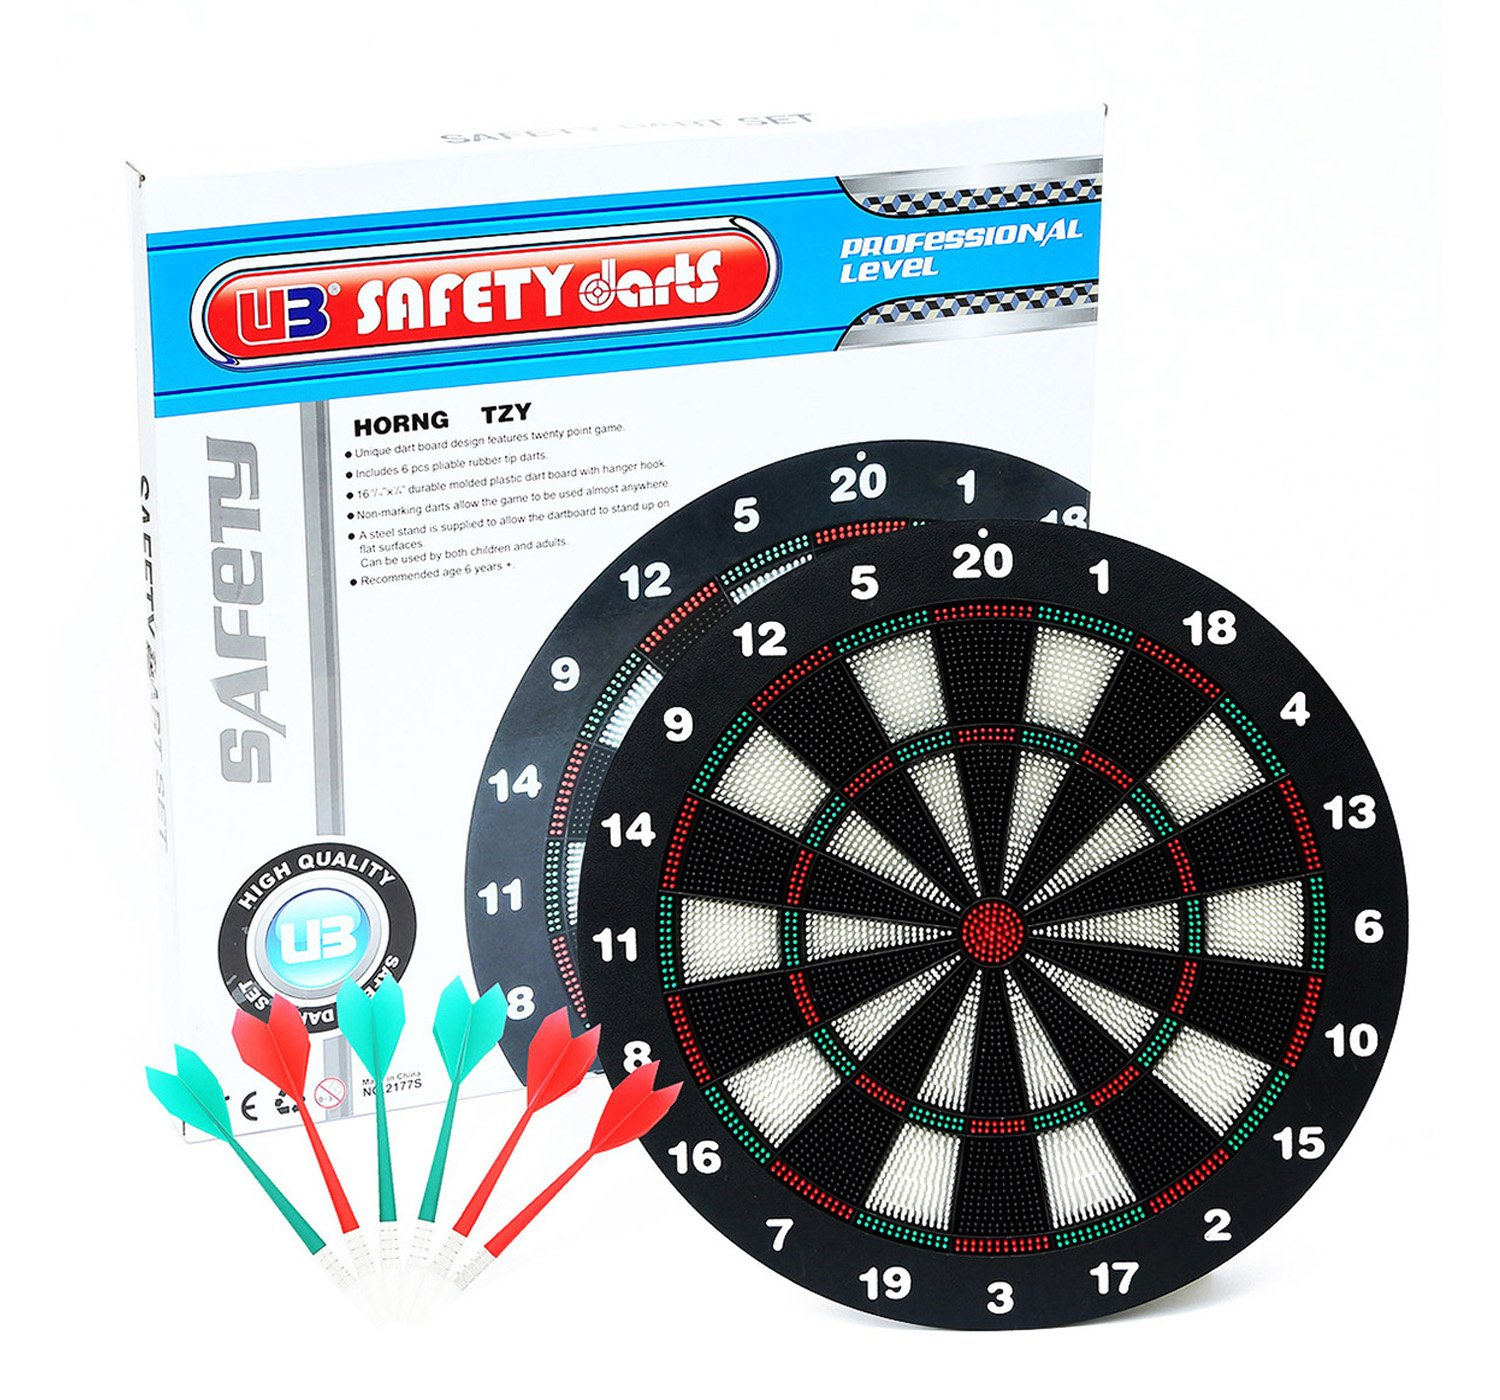 AOQING 16 Inches Safety Dart Board With Soft Safety Darts   Great Games For  Kids Relax And Leisure Sport For Office